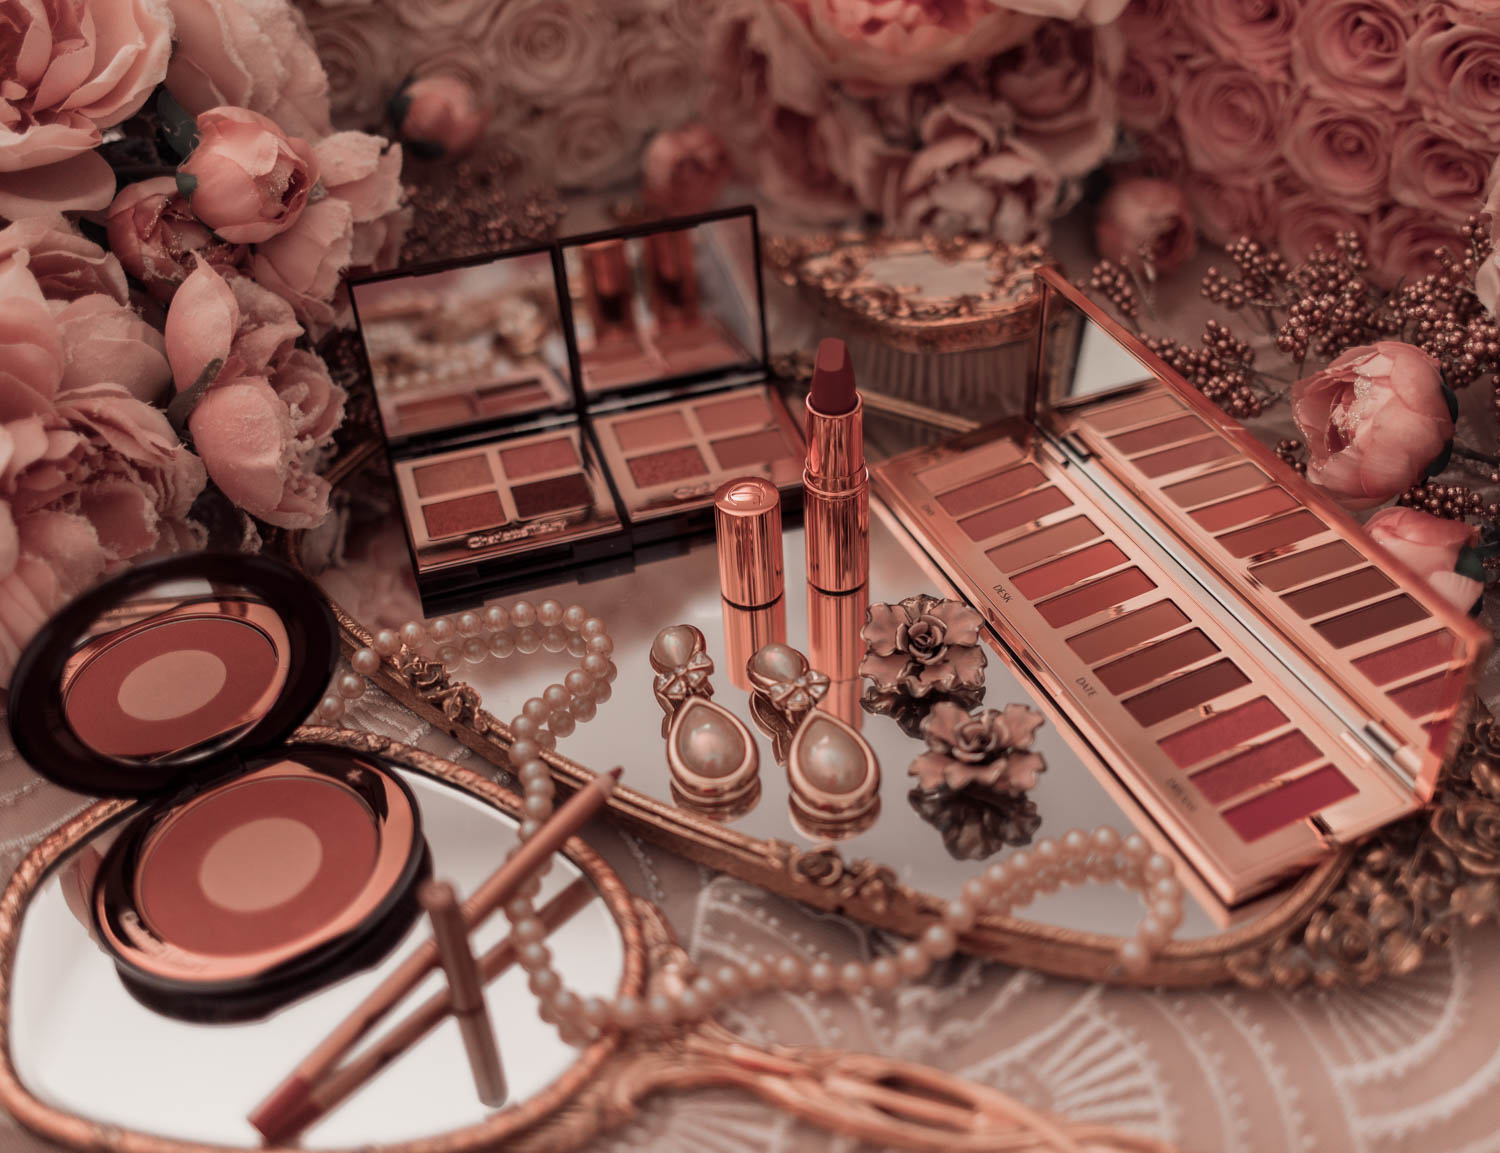 Feminine fashion and beauty blogger Elizabeth Hugen of Lizzie in Lace shares her honest Charlotte Tilbury Pillowtalk Collection Review